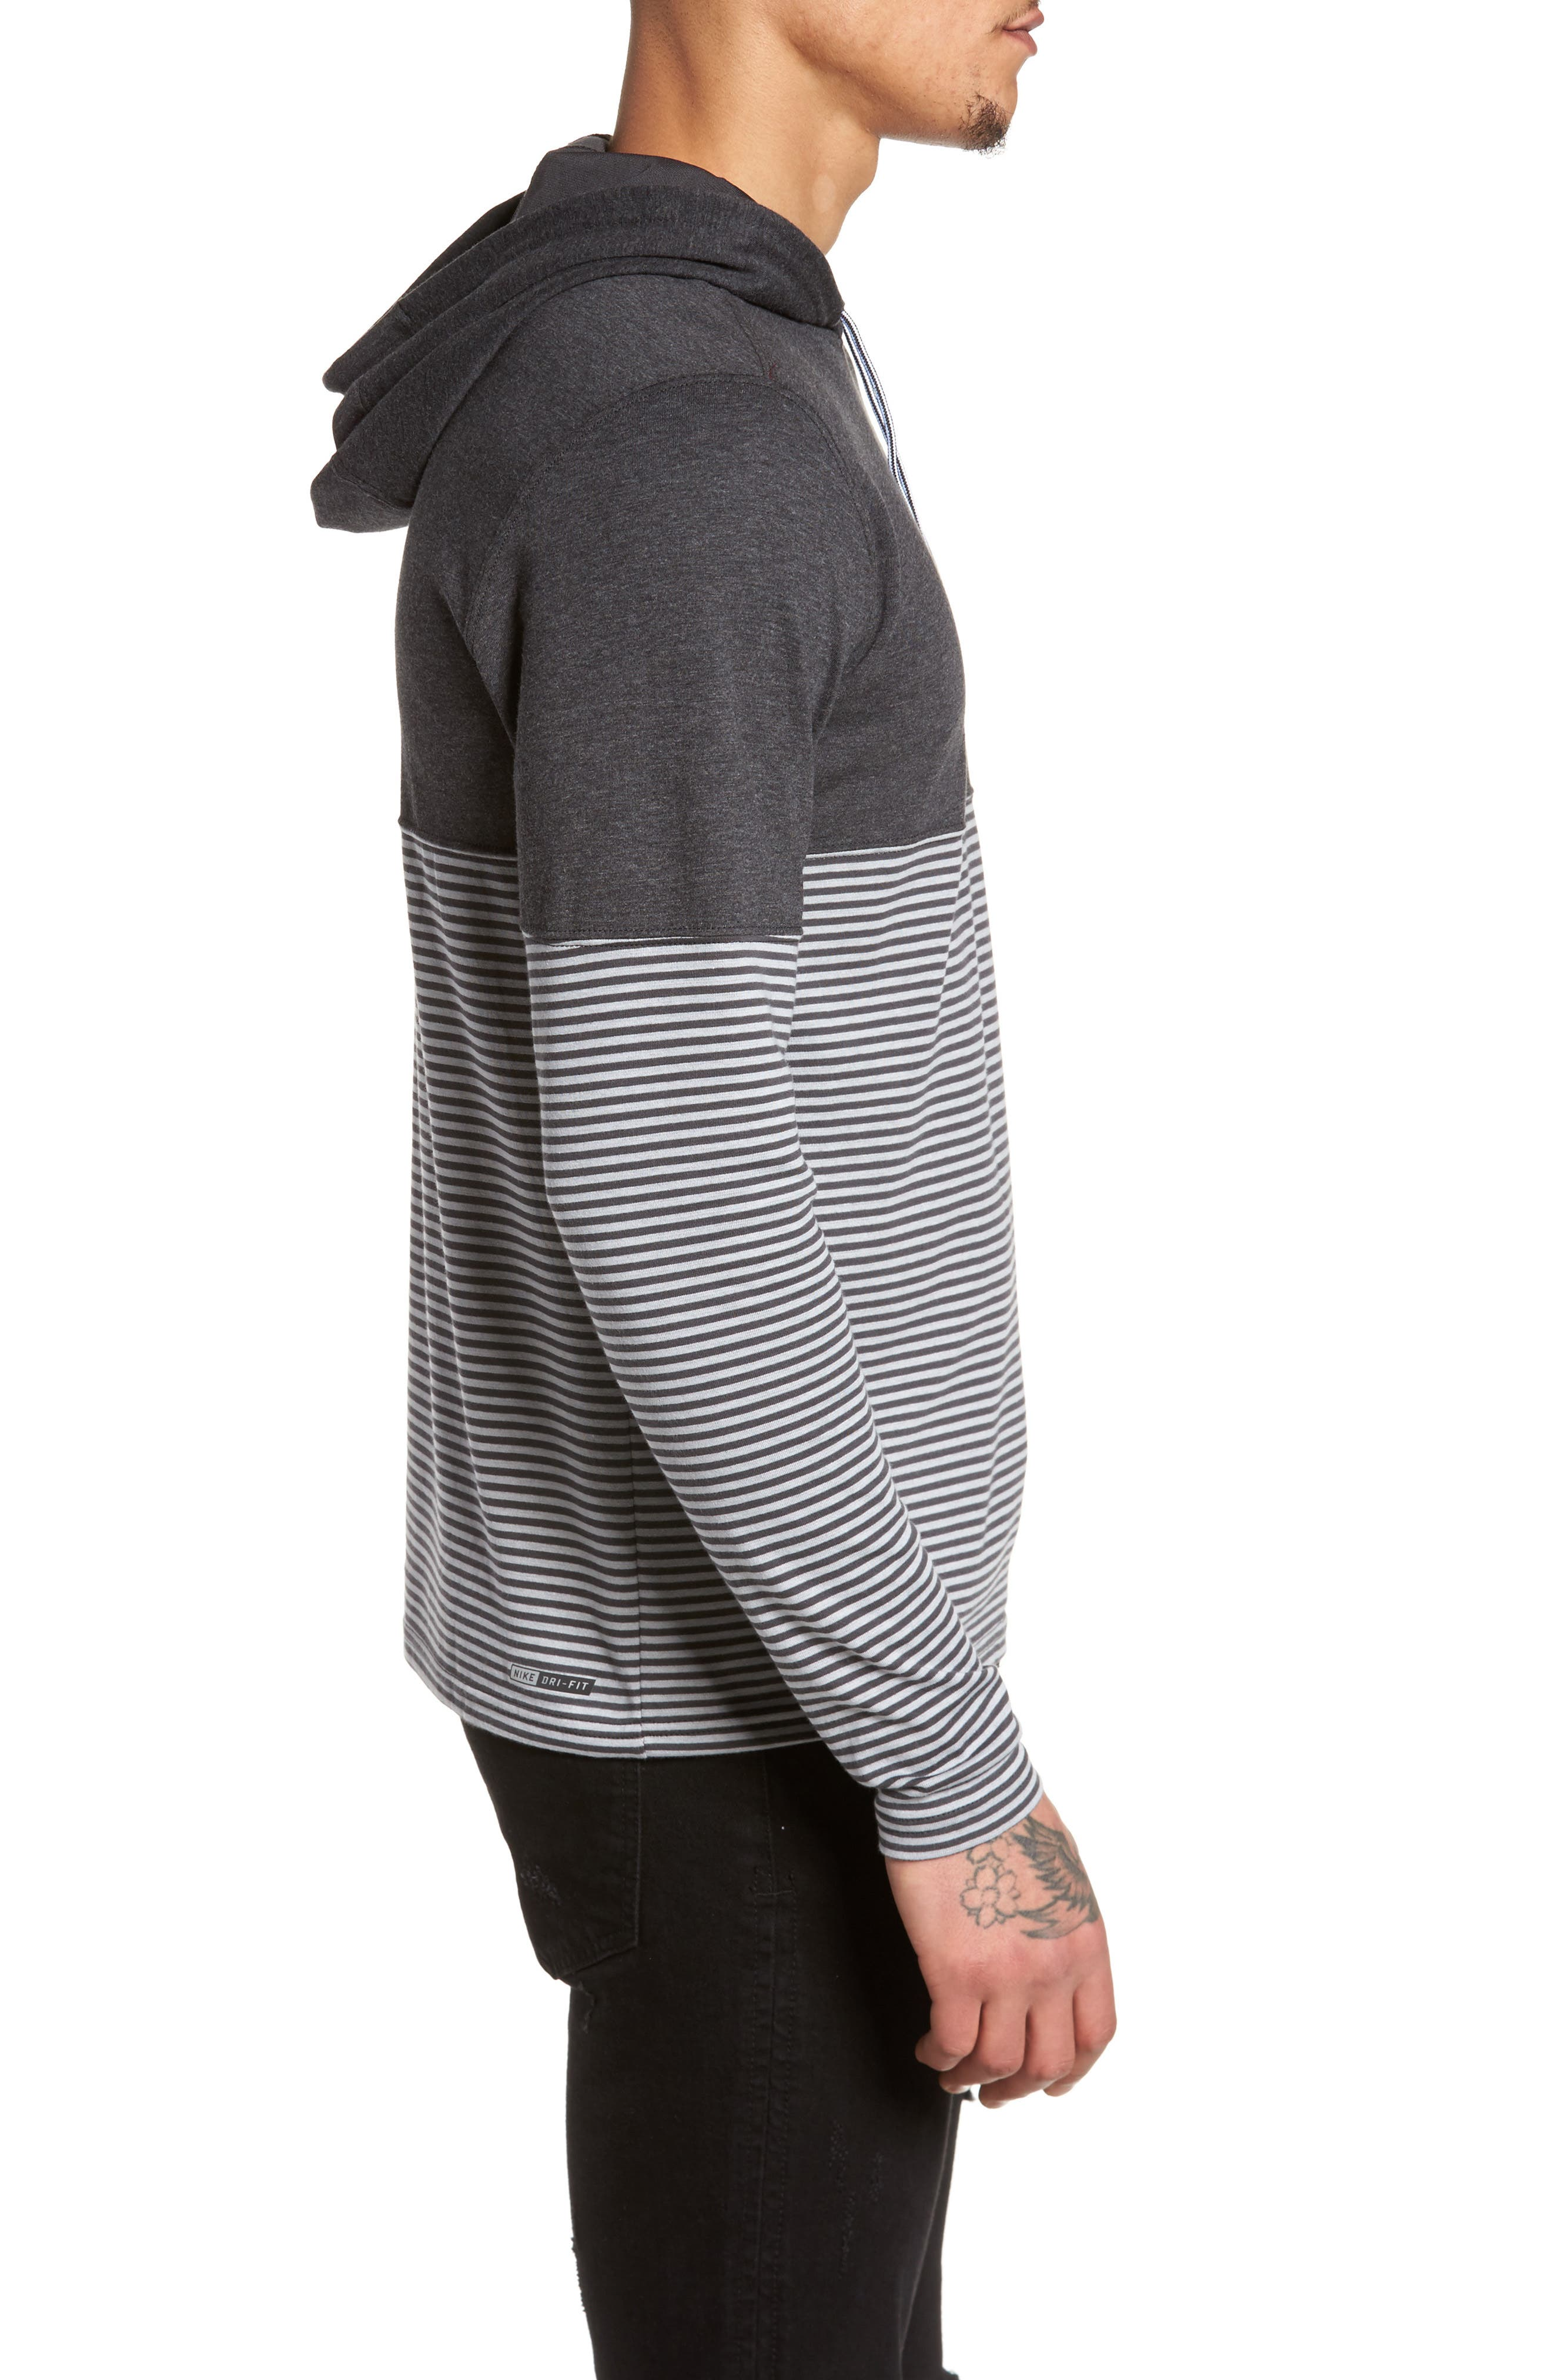 Recess Dry Hoodie,                             Alternate thumbnail 3, color,                             Black Heather